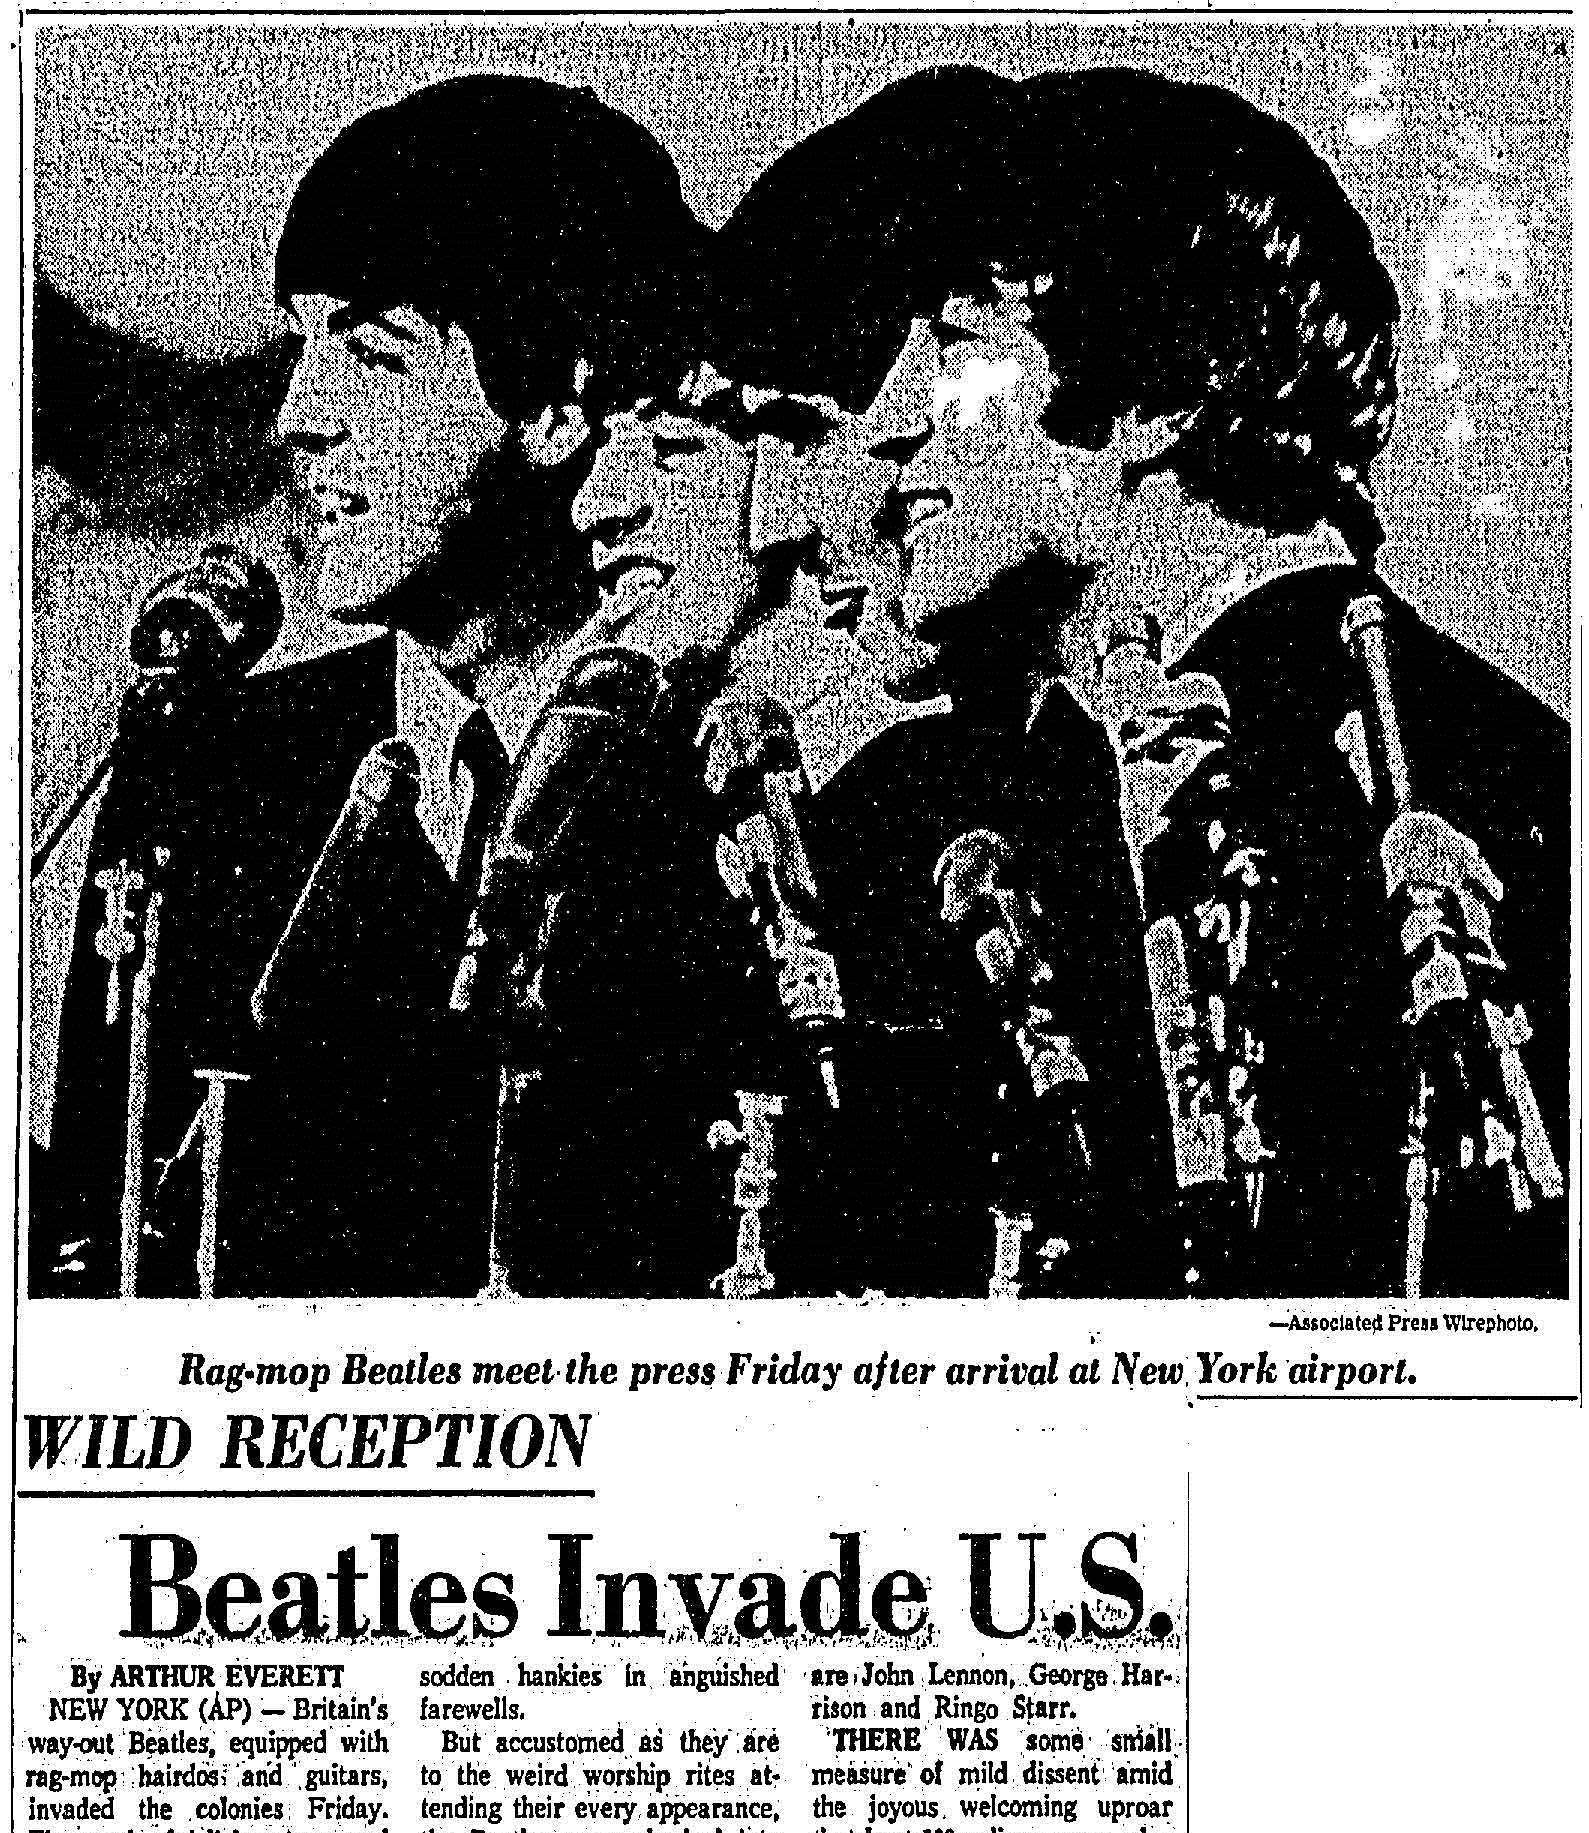 (From the Dallas Morning News, 8 February 1964. Click to open full article.)